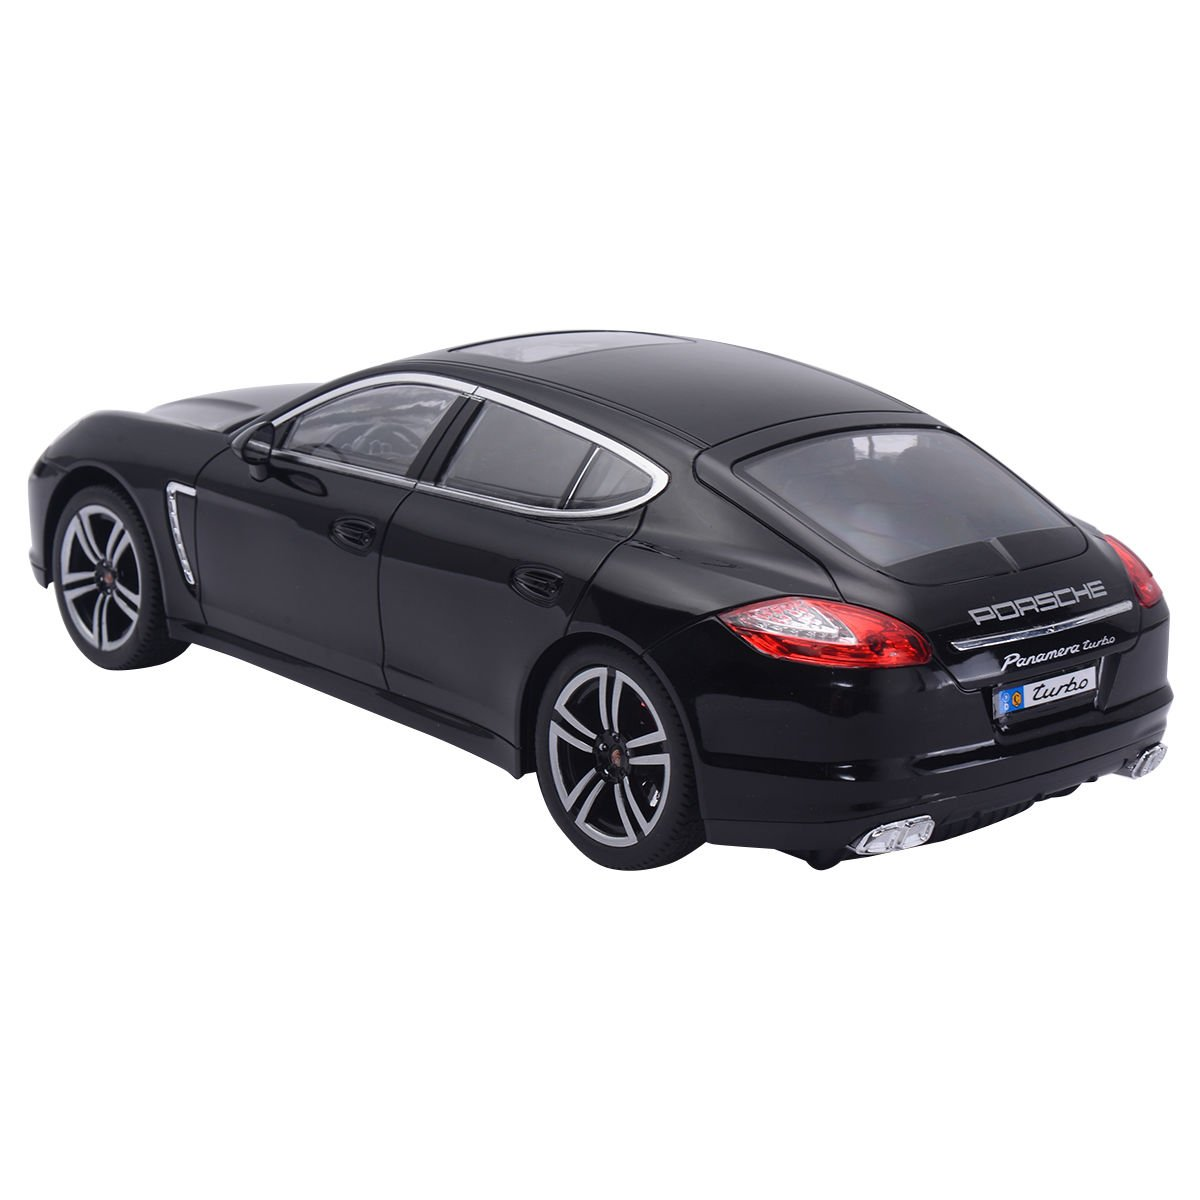 Amazon.com: Costzon 1:14 Porsche Panamera Licensed Electric Radio Remote Control RC Car w/Lights New: Toys & Games